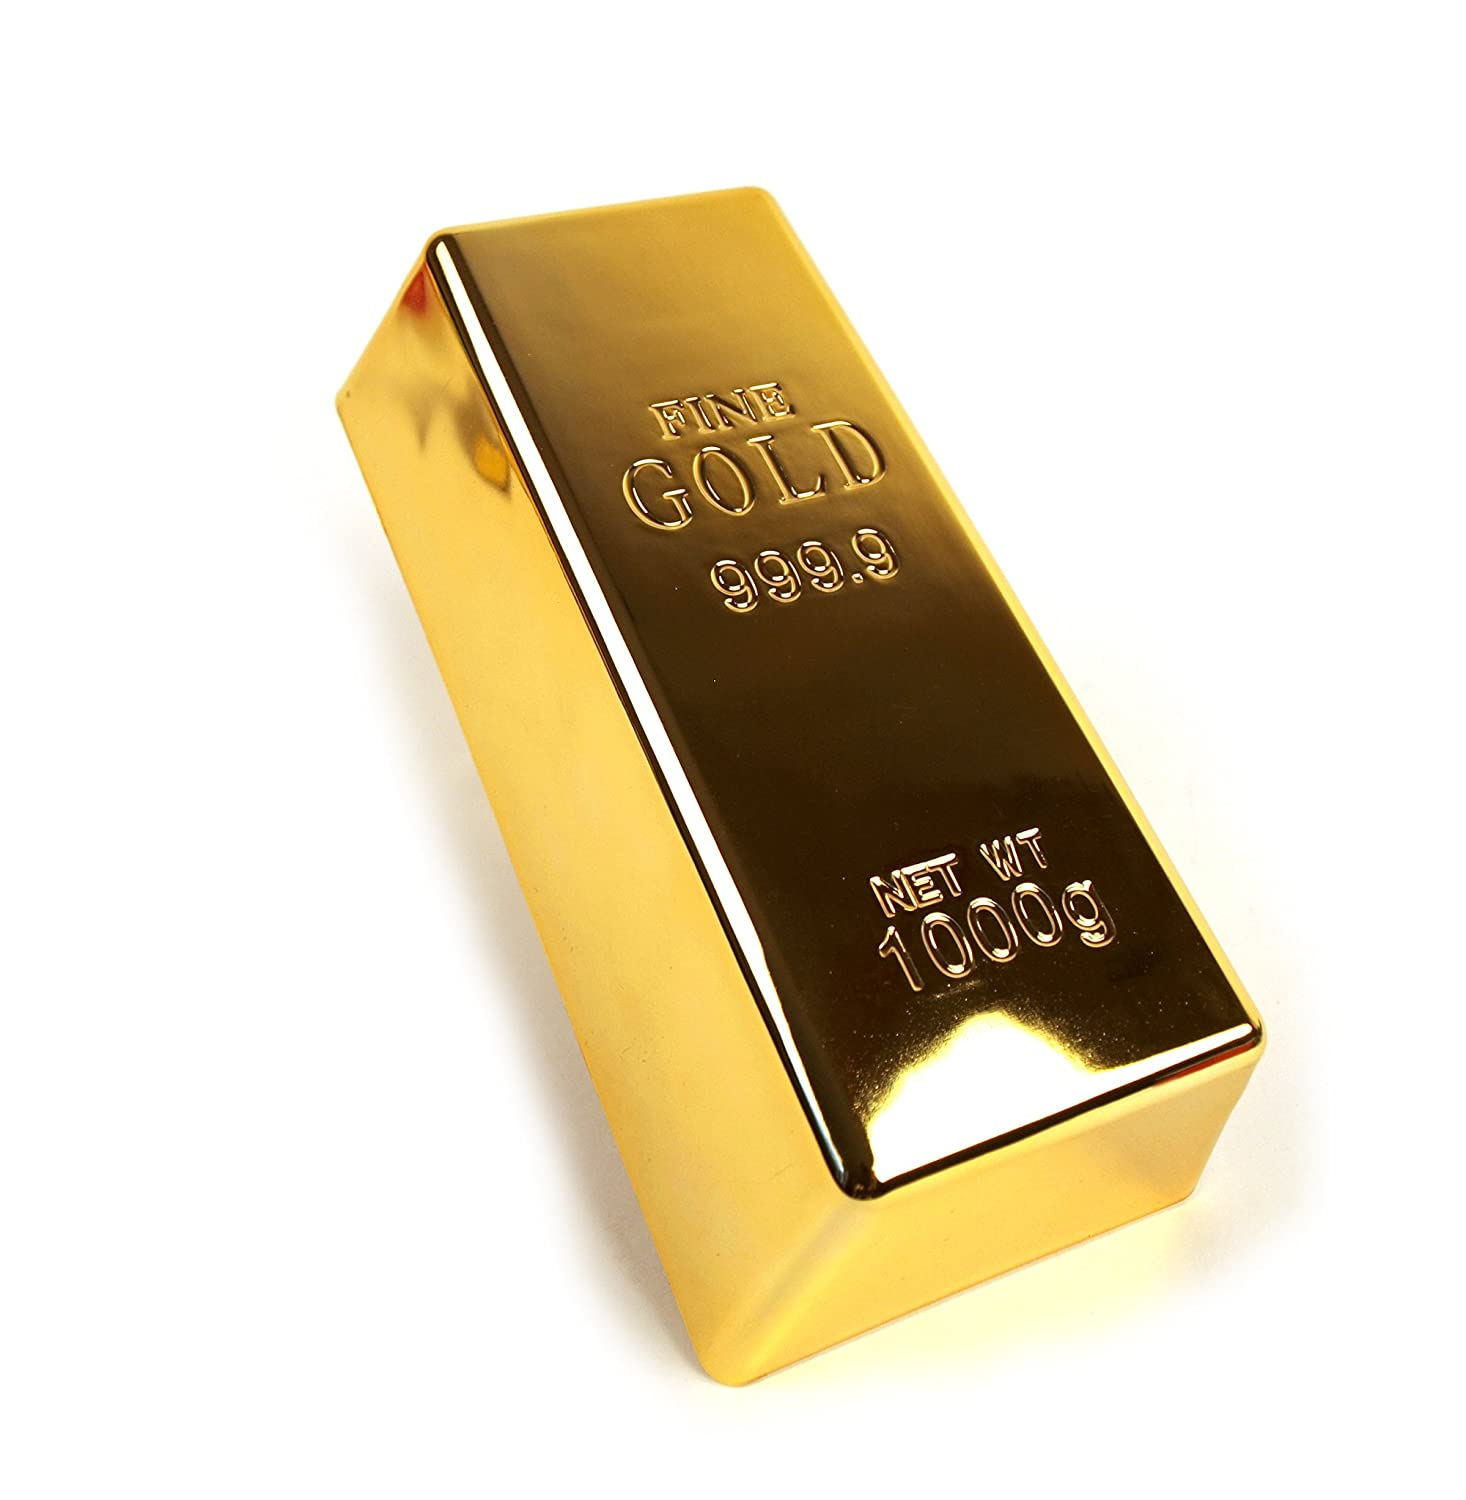 1kg 35oz Fake Gold Bar Bullion Door Stop Paperweight By Cas Amazon In Home Improvement